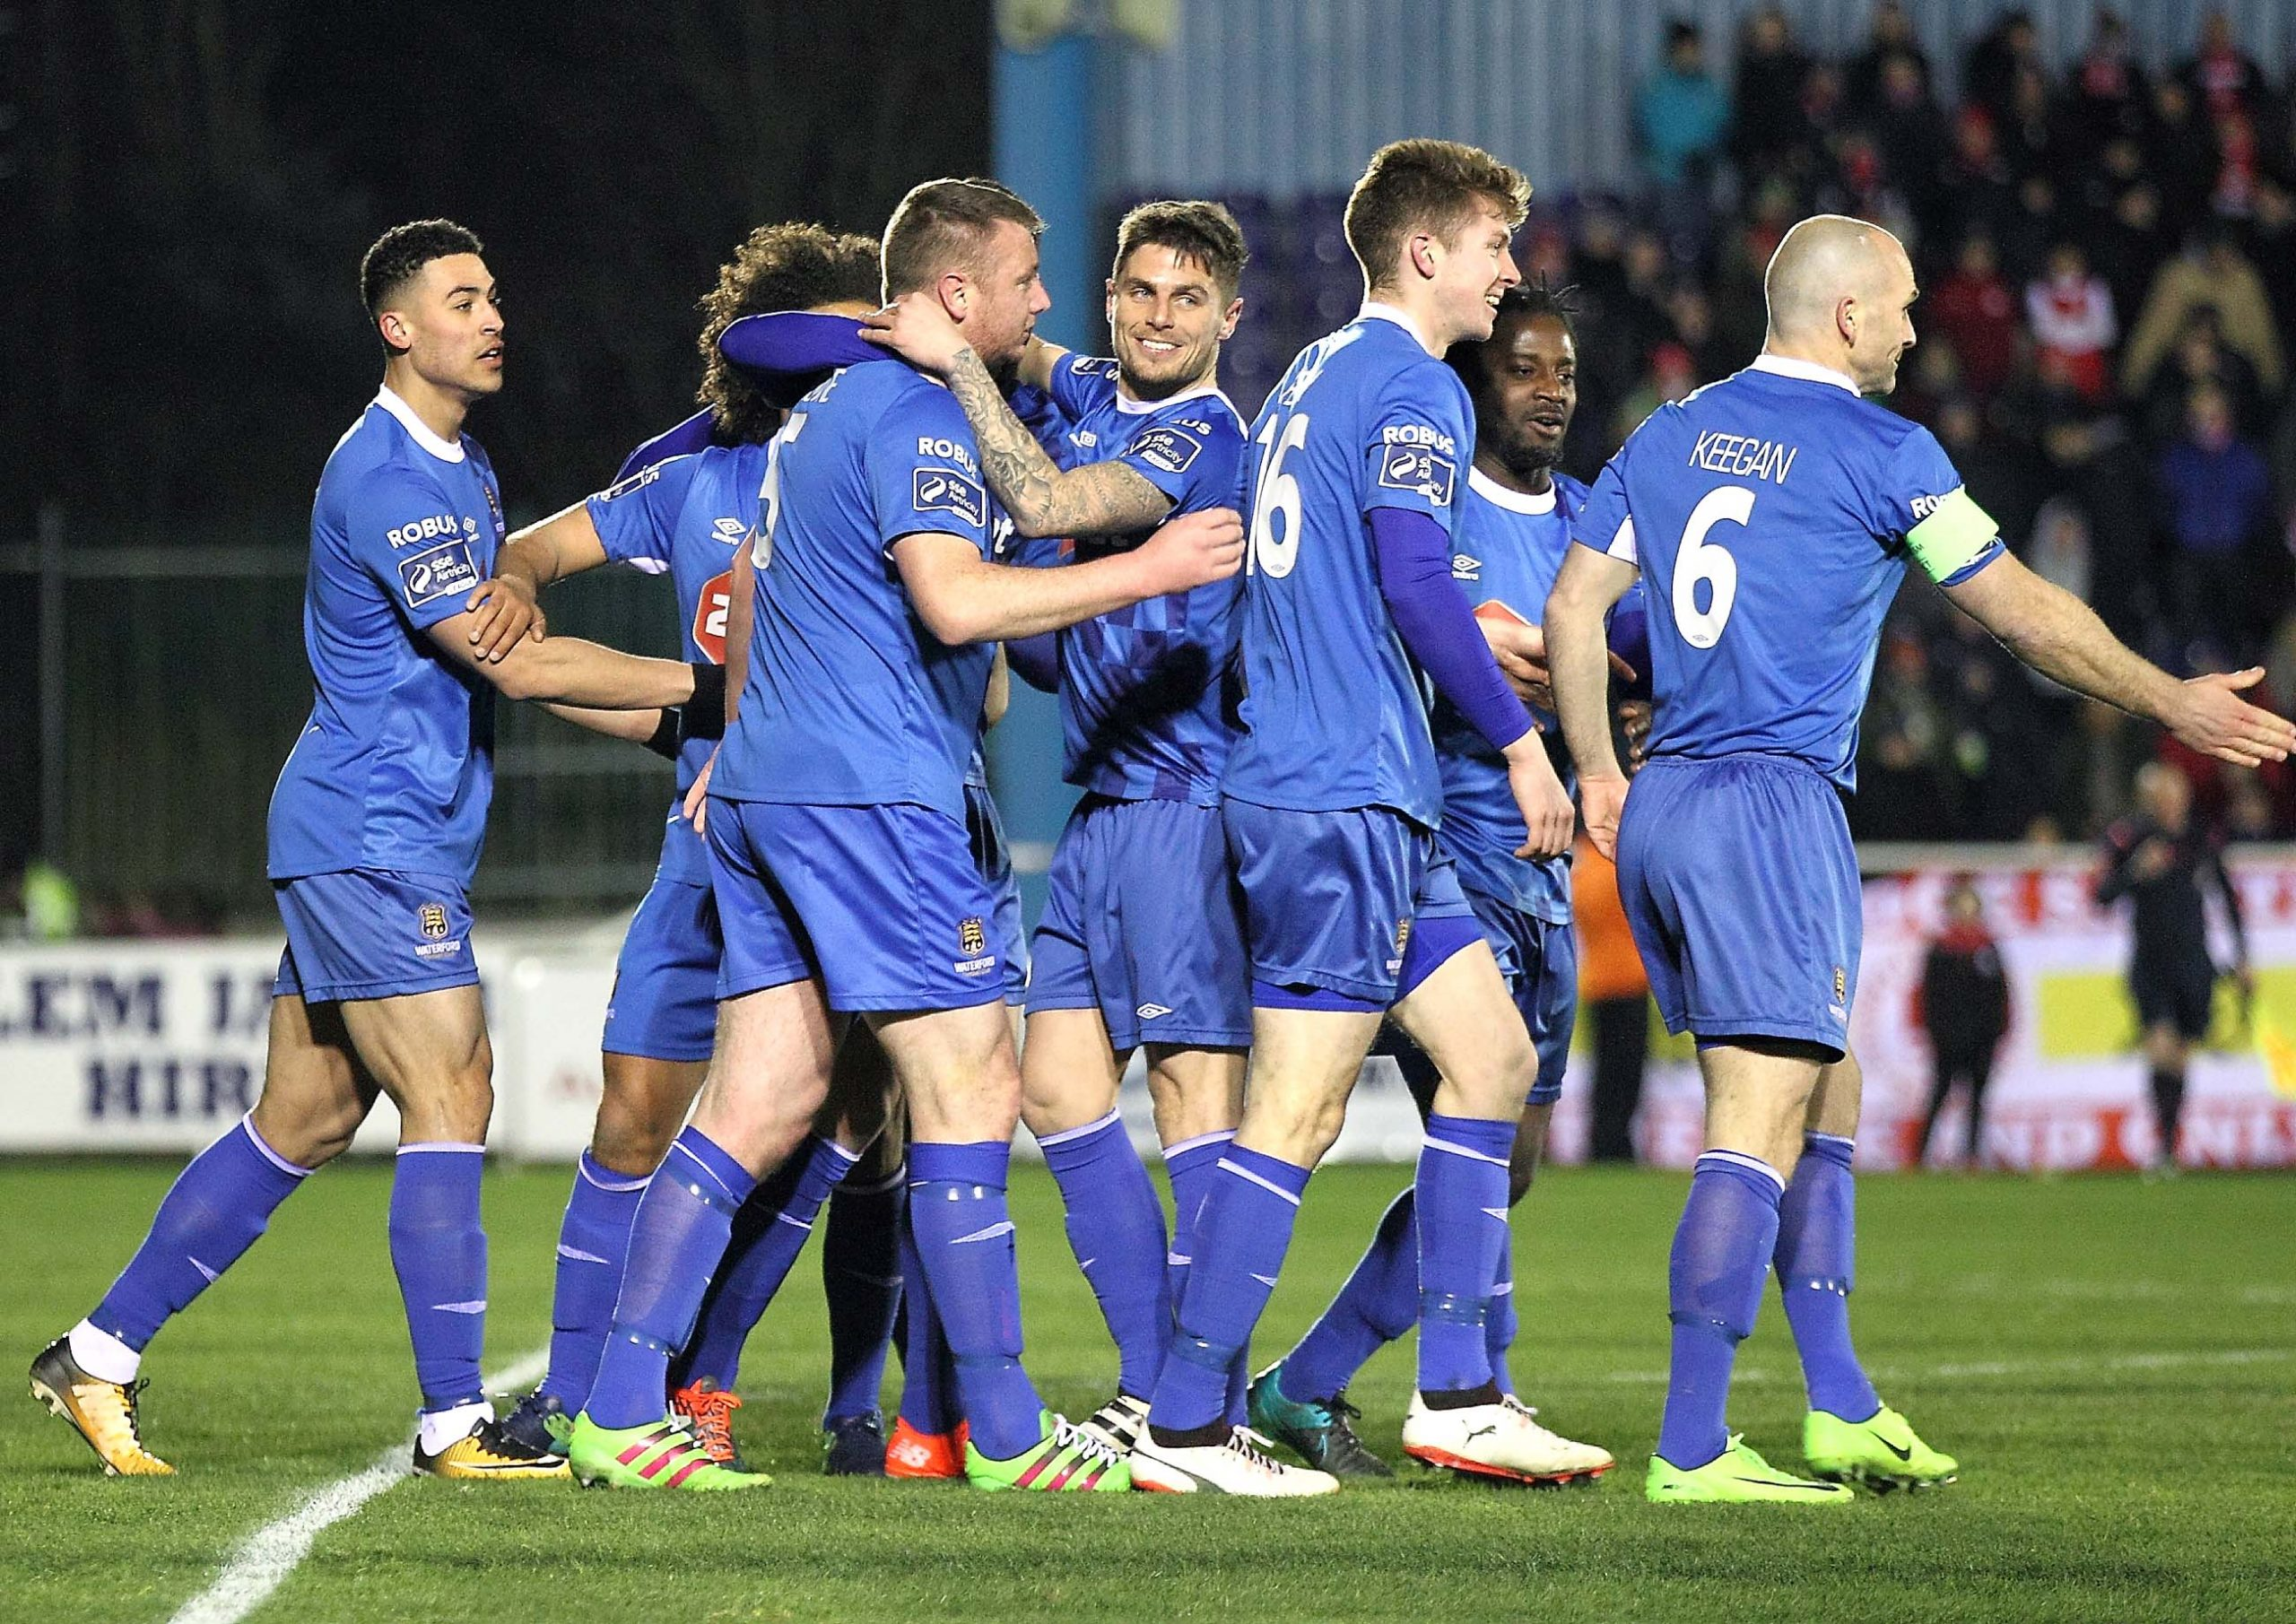 Waterford FC and Shamrock Rovers to go head to head at the RSC this Sunday